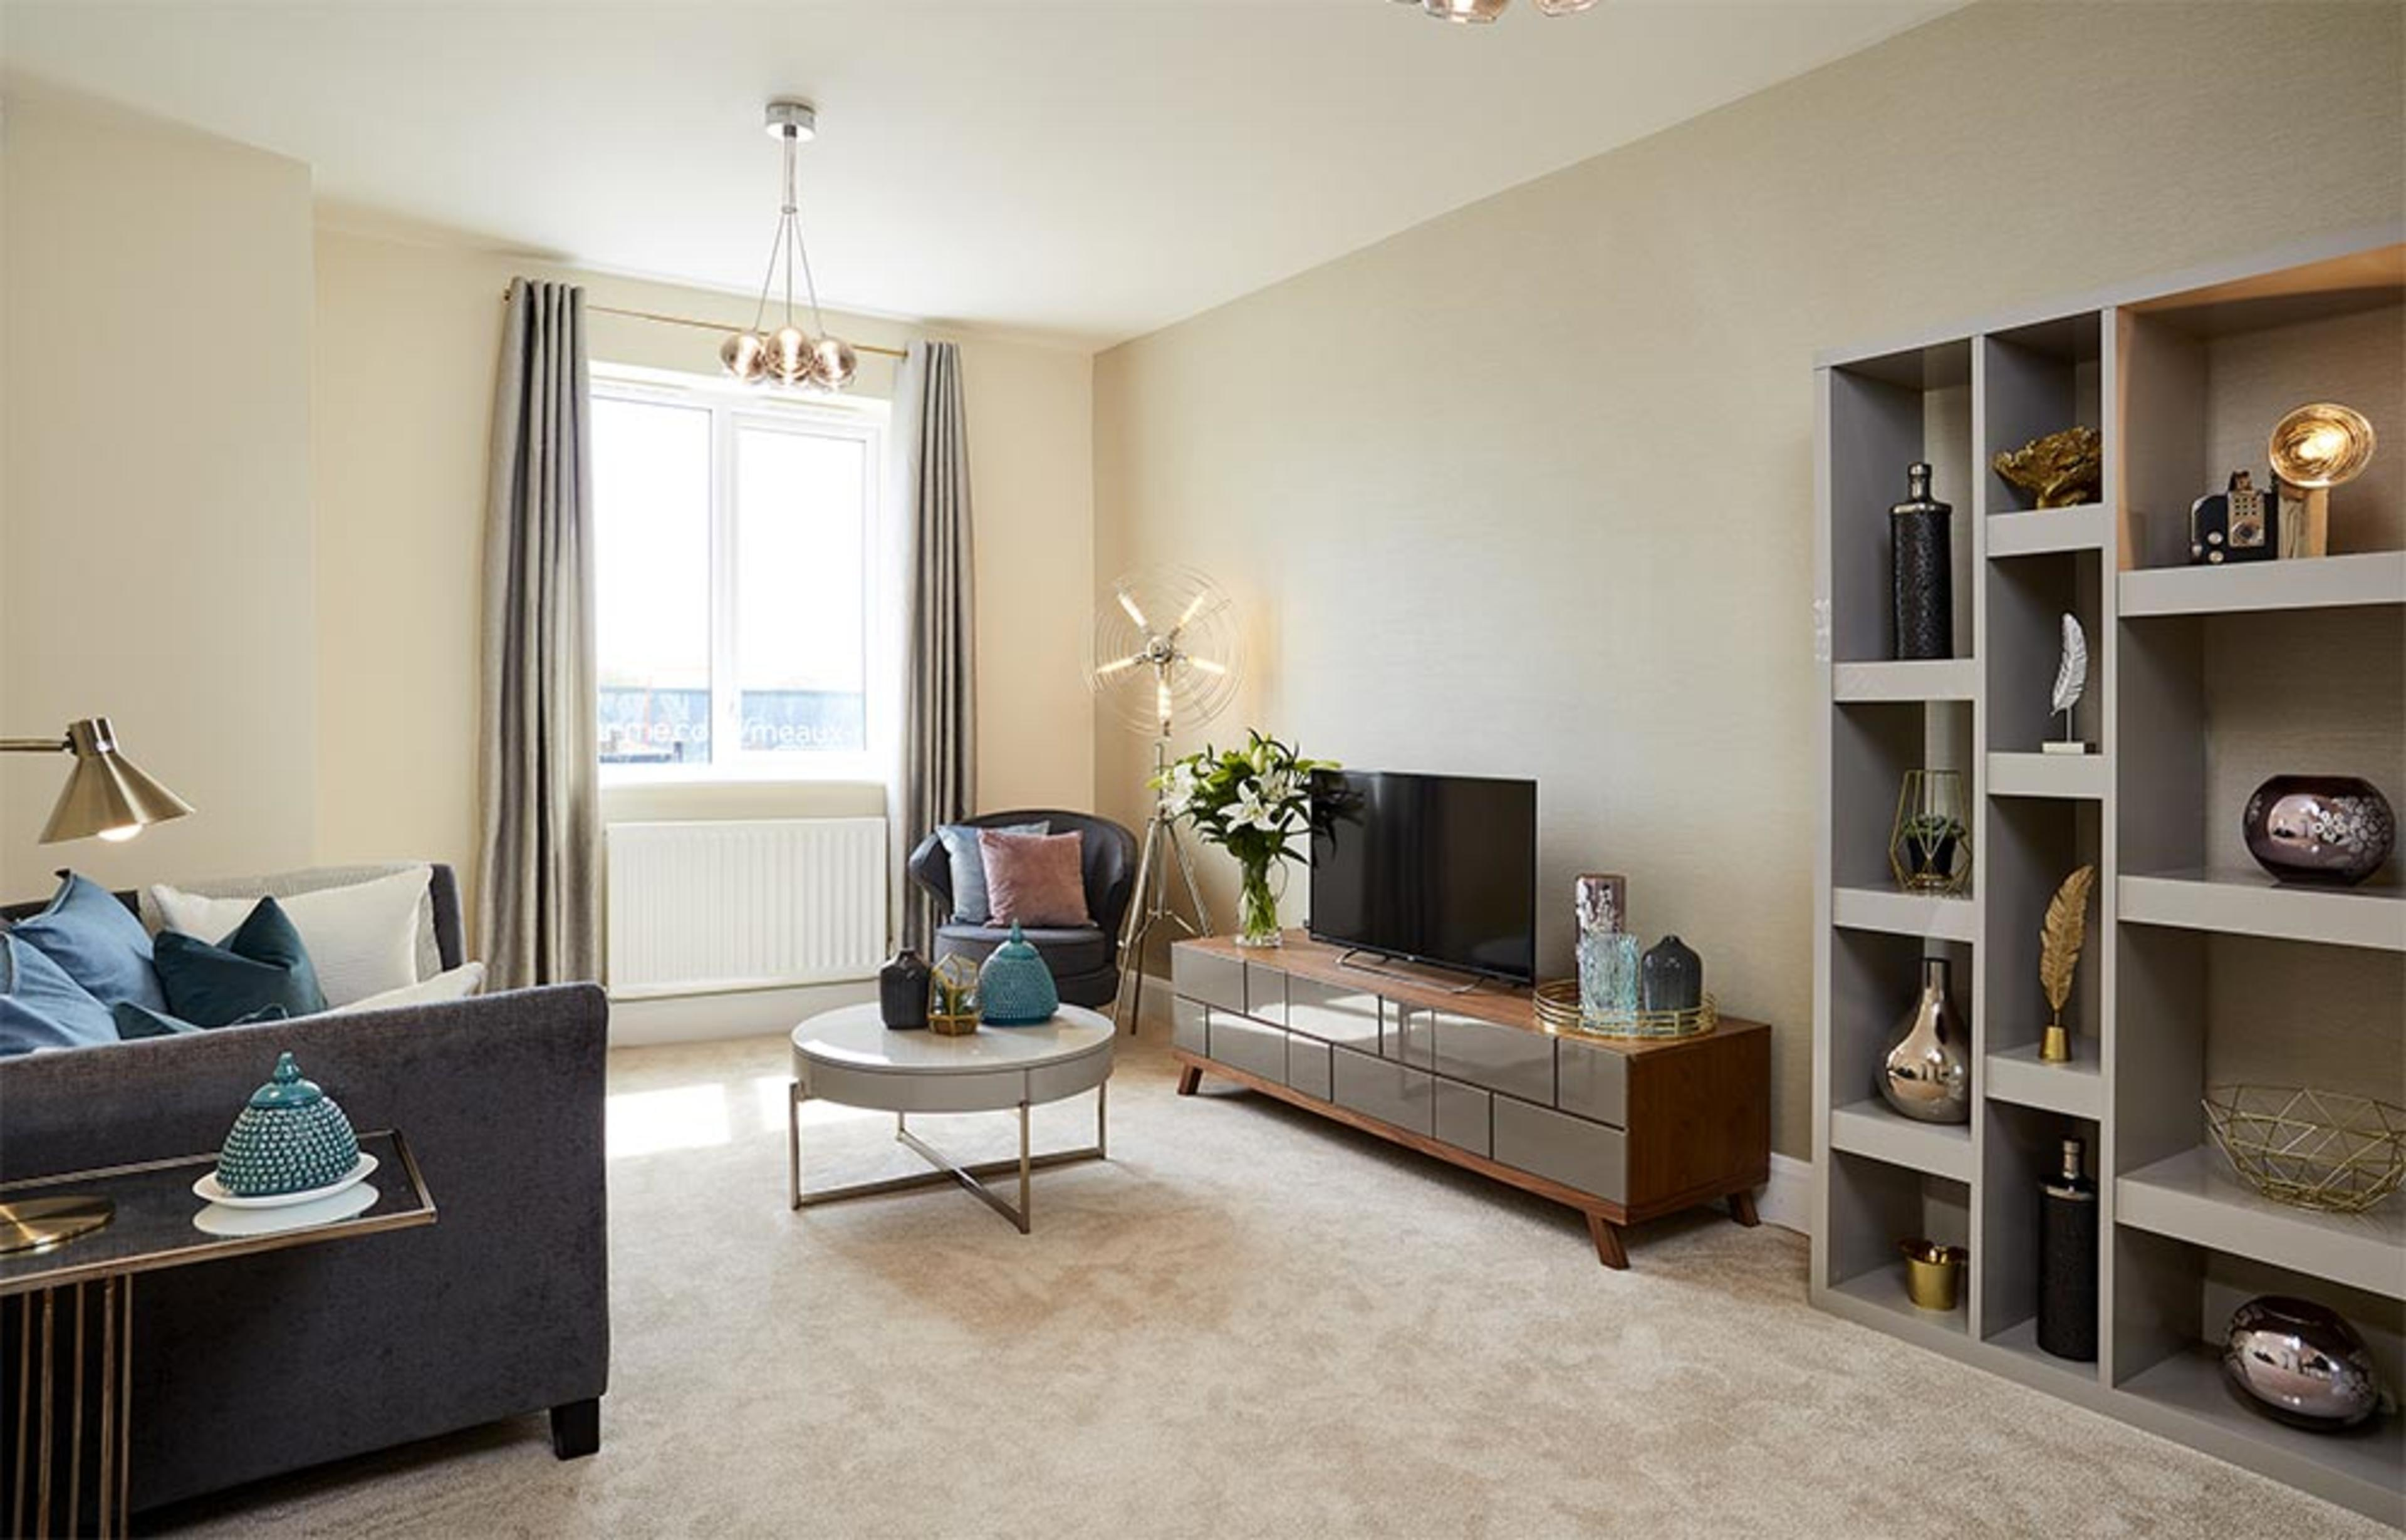 Living room with sofa and furniture in the Octave home at Meaux Rise in Kingswood, Hull